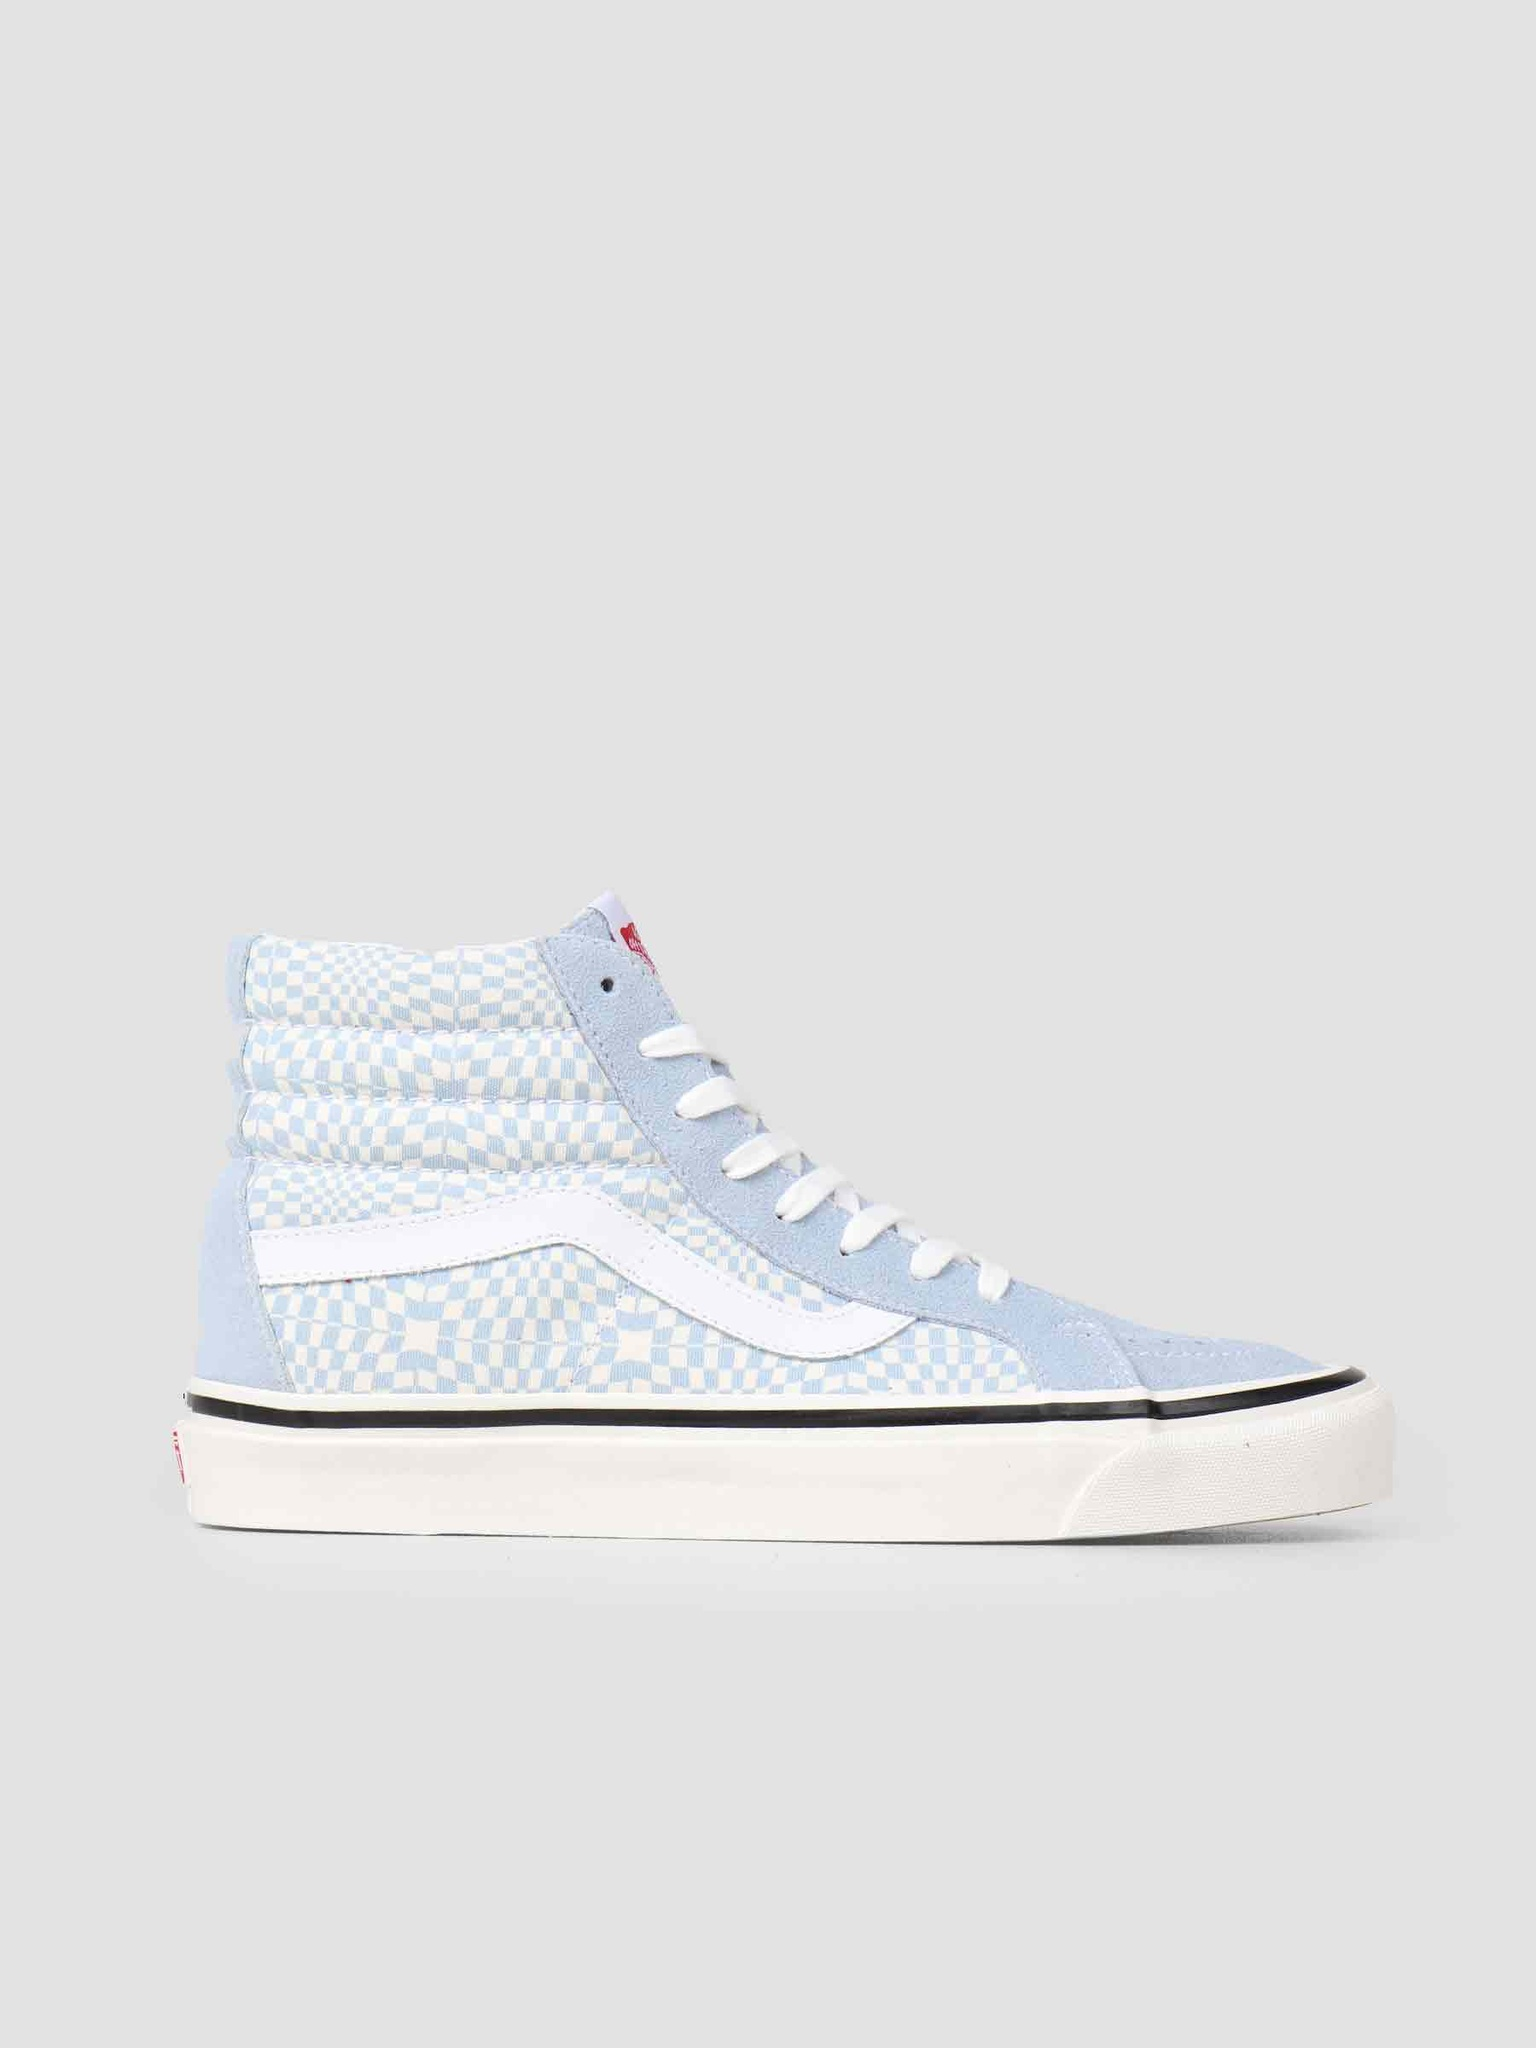 Vans Vans UA Sk8-Hi 38 DX Anaheim OG Light Blue White Warp Check Vn0A38Gfvsg1